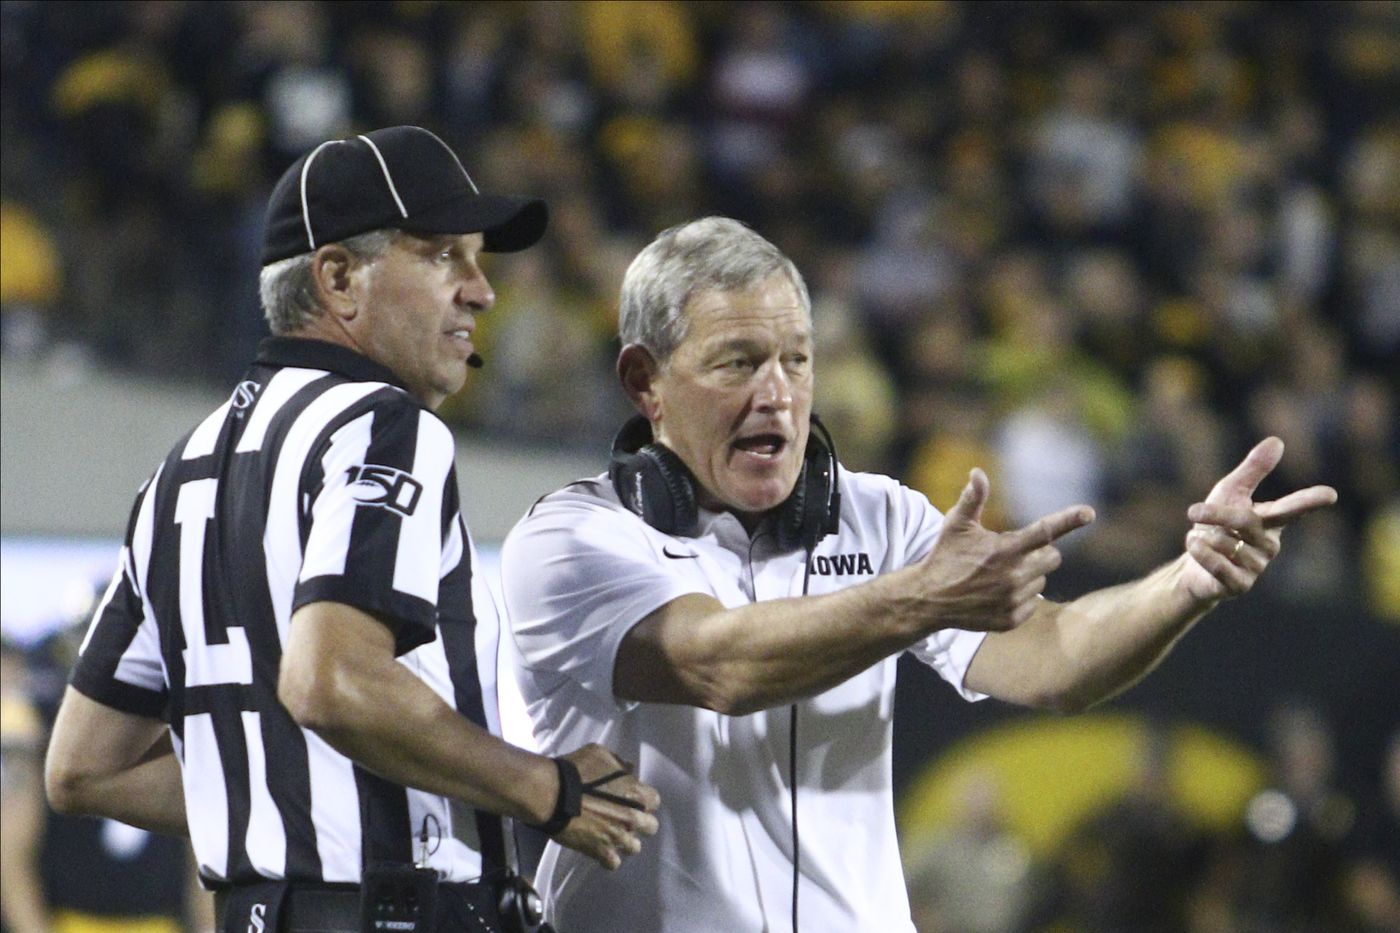 Iowa Football Head Hawkeye Kirk Ferentz Falls Down List Of